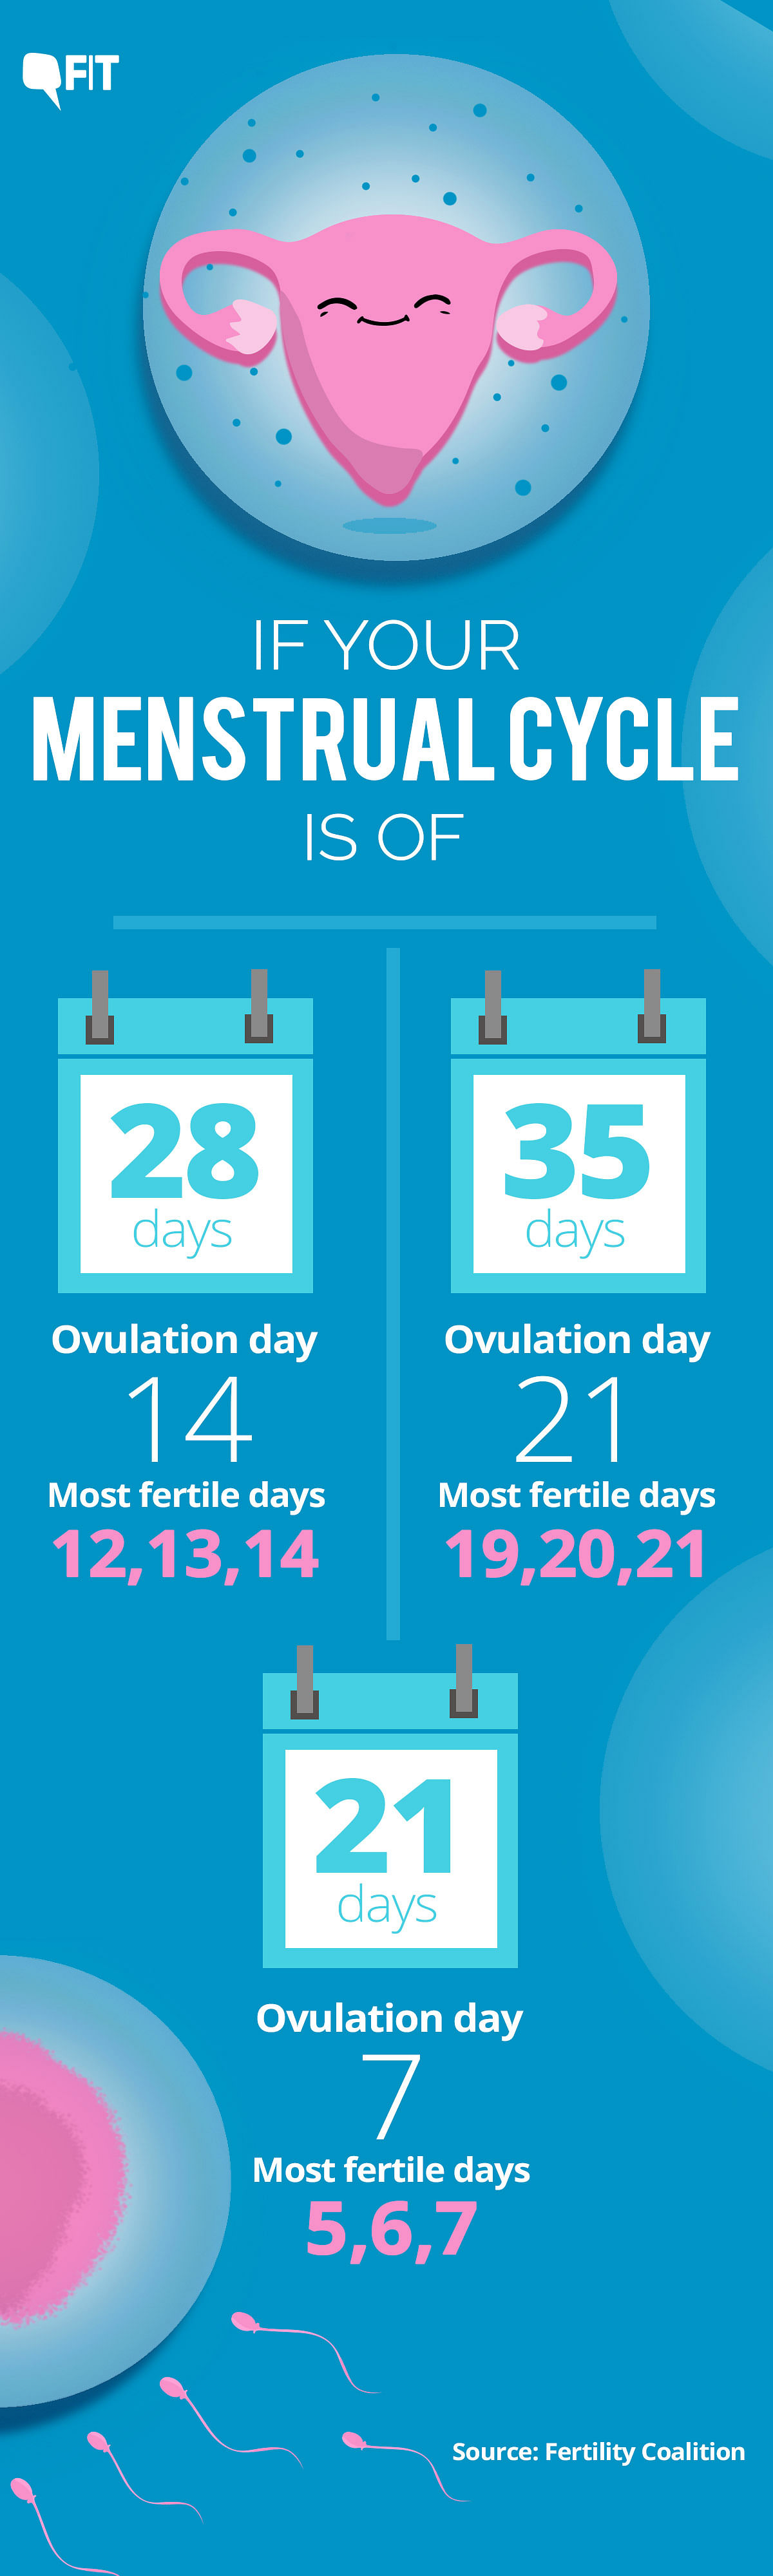 The chances of pregnancy increases by 27-33 percent in the three days leading to ovulation and decline rapidly immediately after.